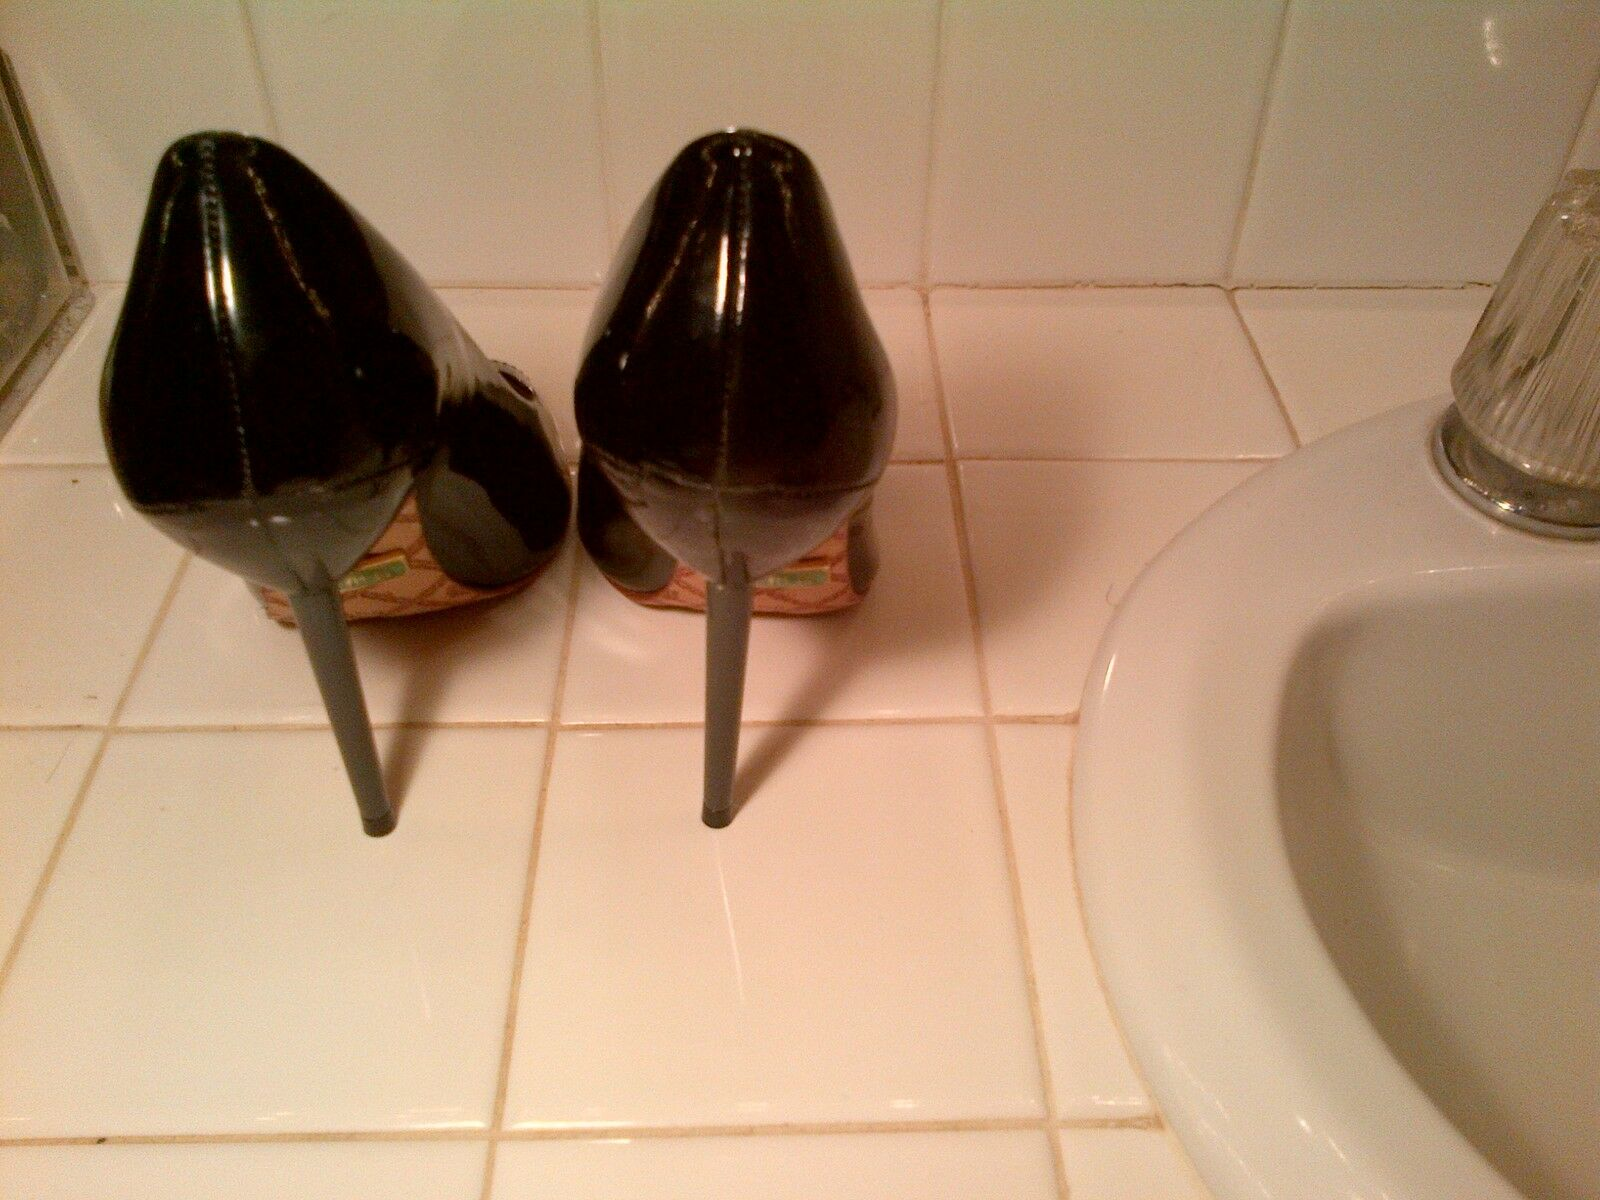 GENTLY WORN L.A.M.B. PEEP TOE BLACK PATENT LEATHER LEATHER PATENT PUMPS - SIZE 6 98ddbb